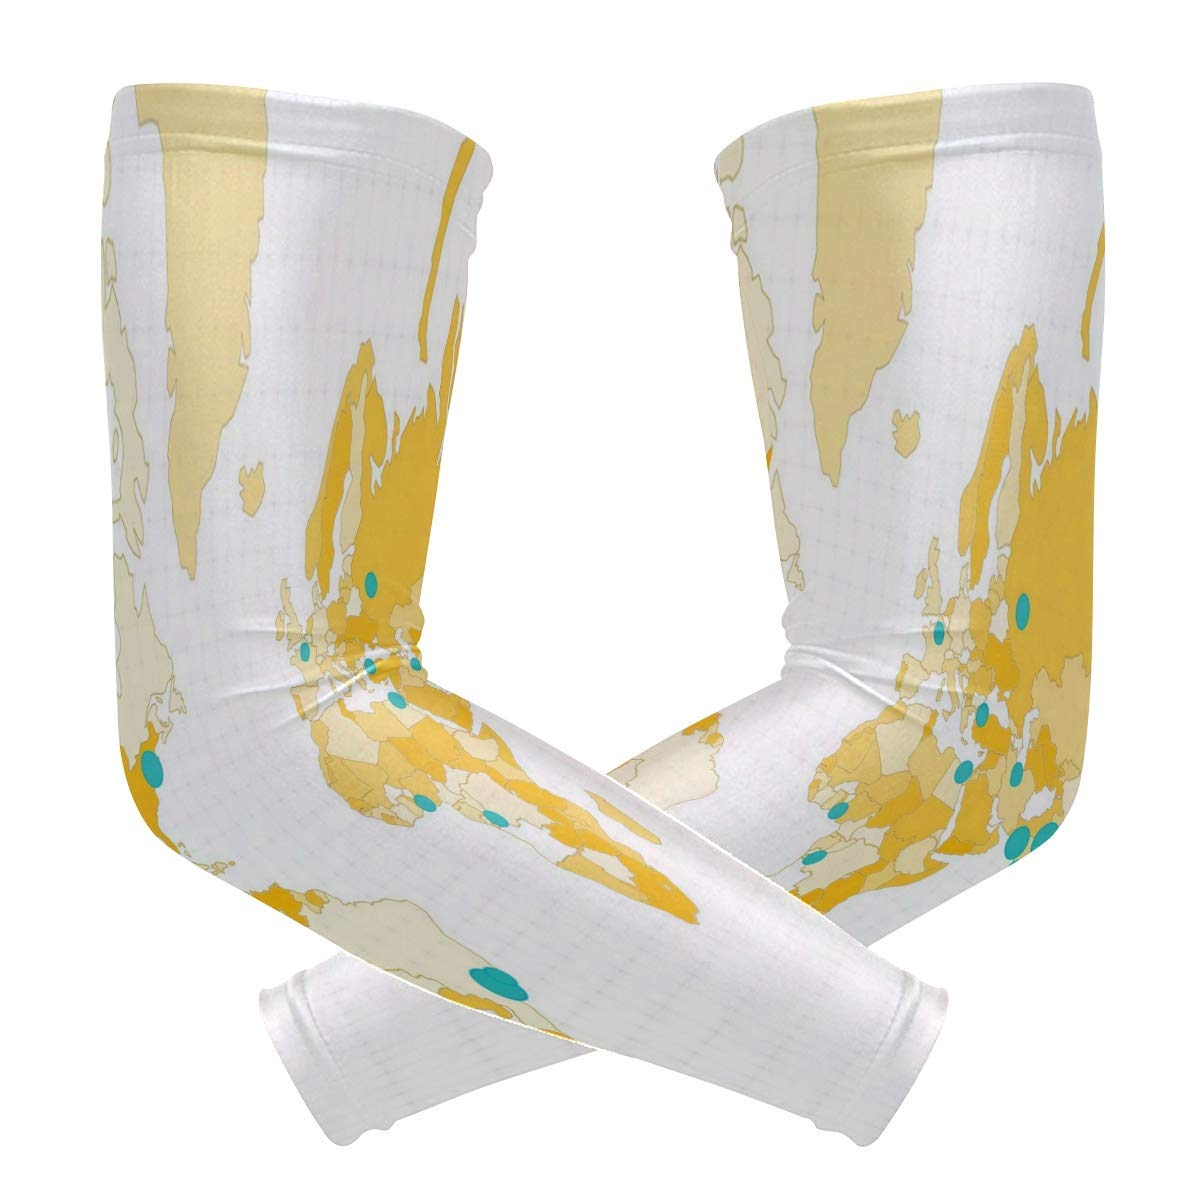 Arm Sleeves Cute Happy April Fools Day Mens Sun UV Protection Sleeves Arm Warmers Cool Long Set Covers 2